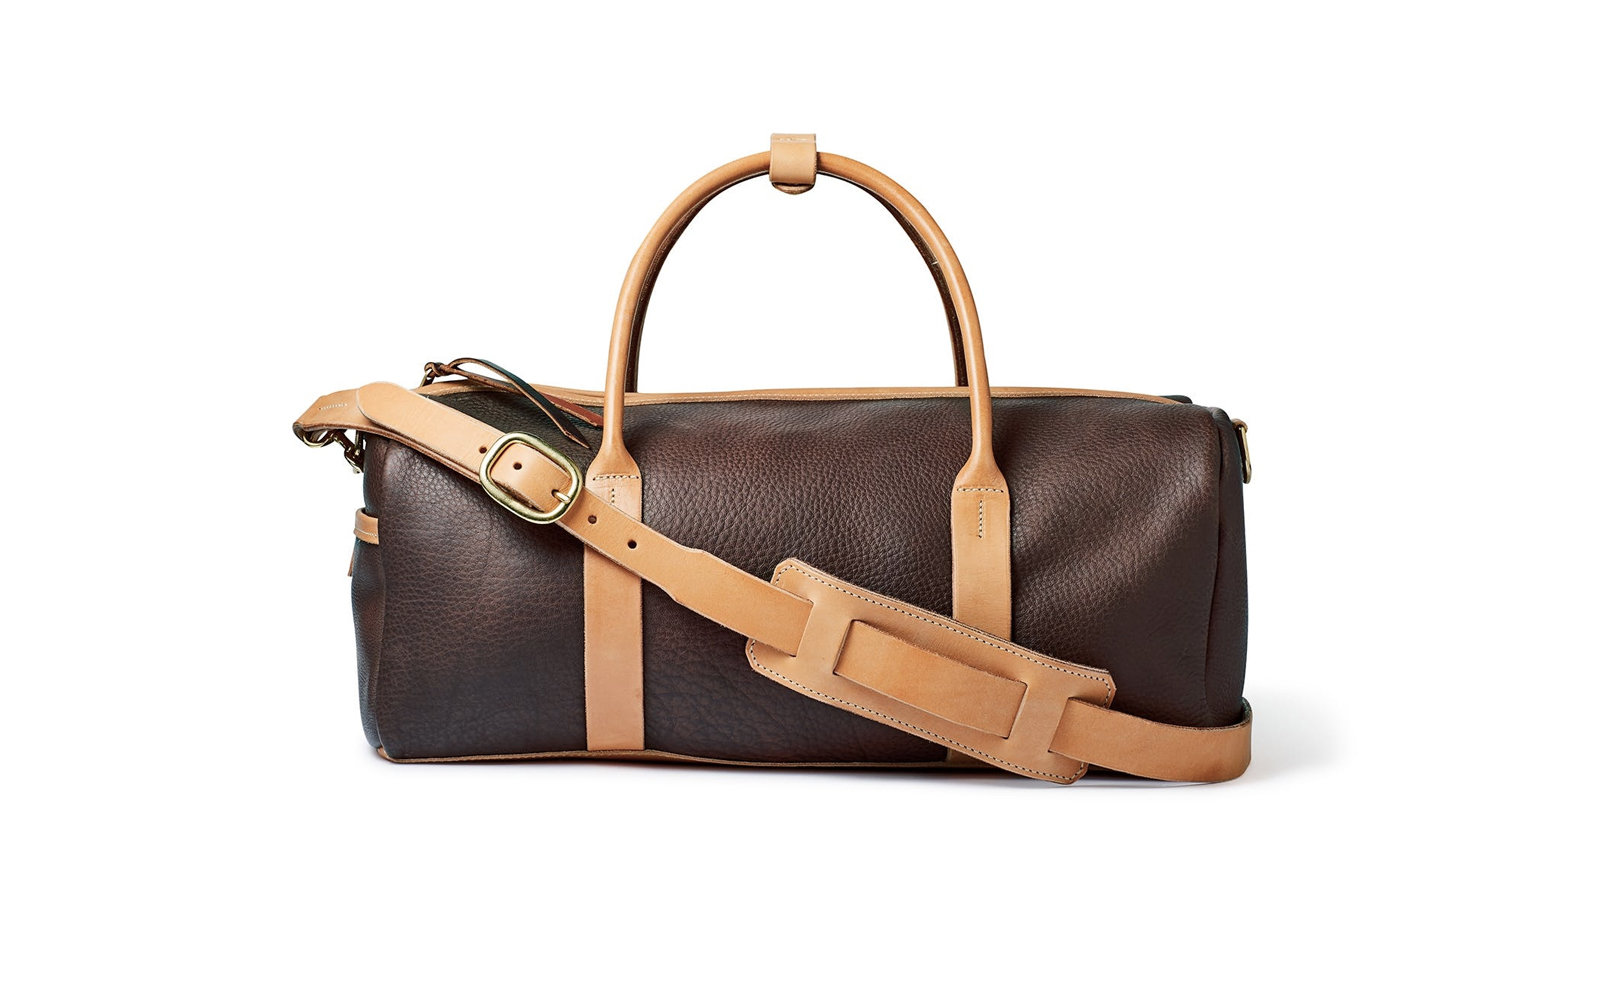 Filson Ranchlands Duffle Bag